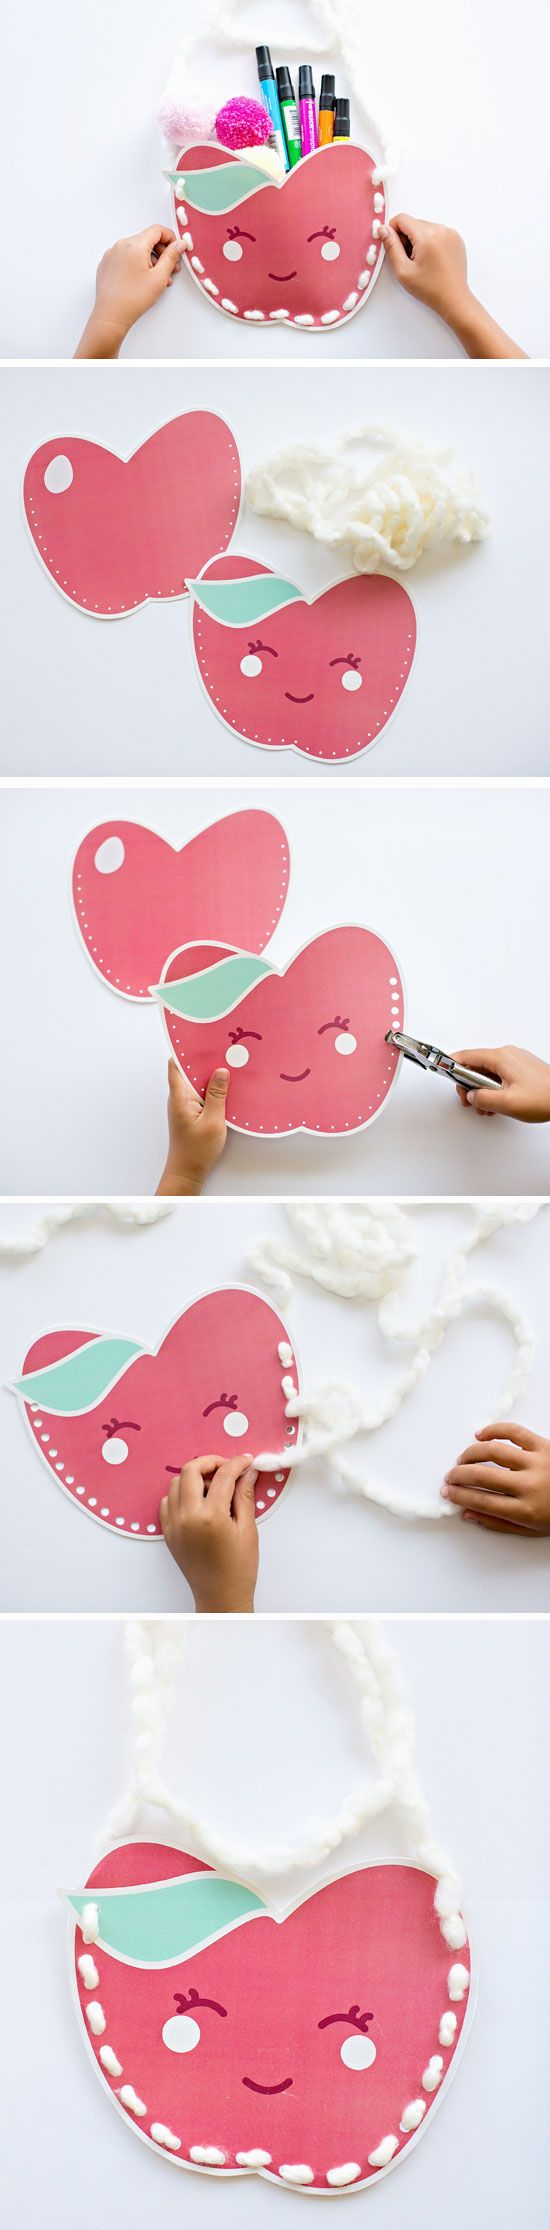 Free Printable Kawaii Purse | Click Pic for 23 DIY Christmas Gifts for Teachers From Kids | DIY Teacher Appreciation Gifts from Students